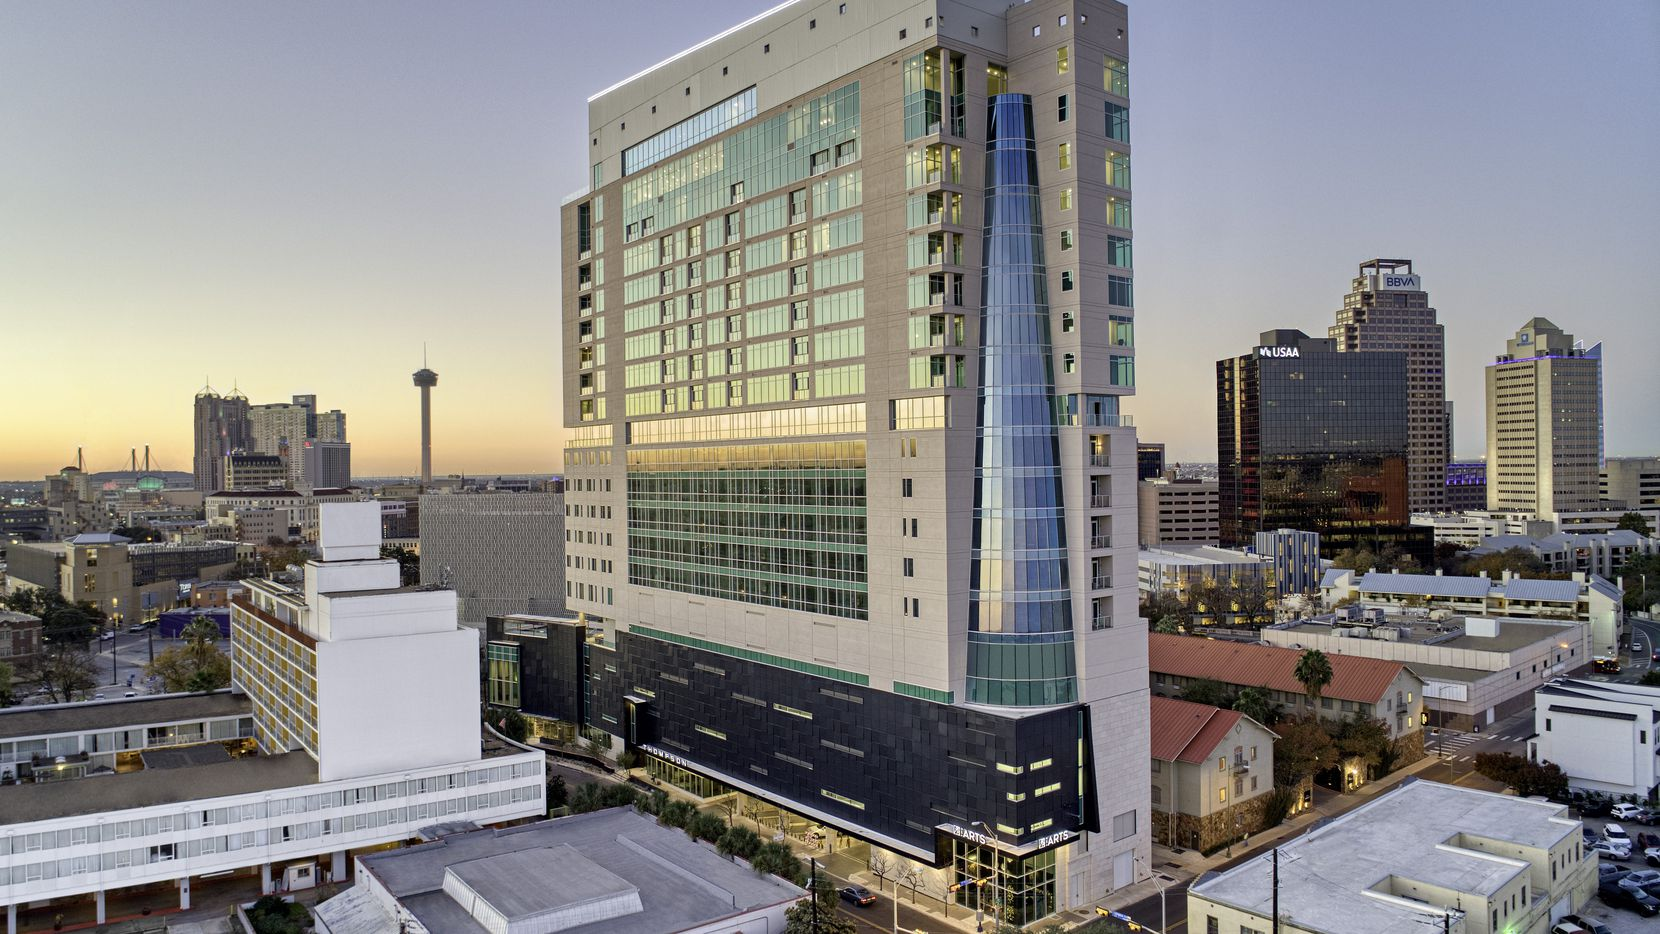 The Thompson San Antonio offers travelers a luxurious respite with modern art, handstitched leather furnishings and warm textiles that call to mind the city's vibrant heritage.